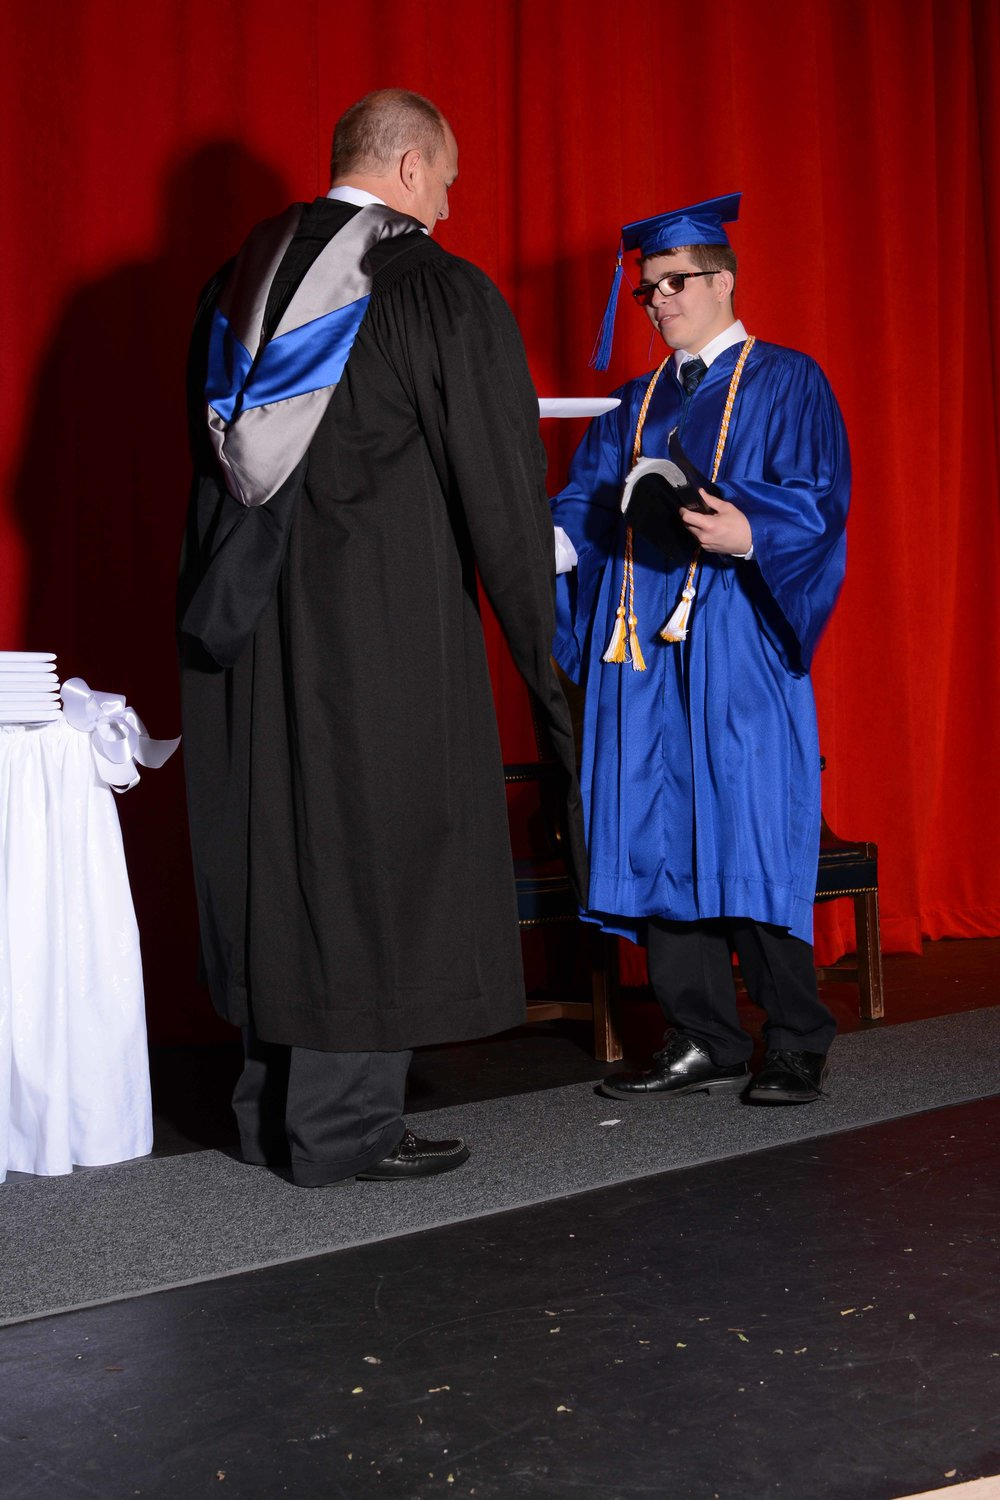 May15 HardingGraduation45.jpg